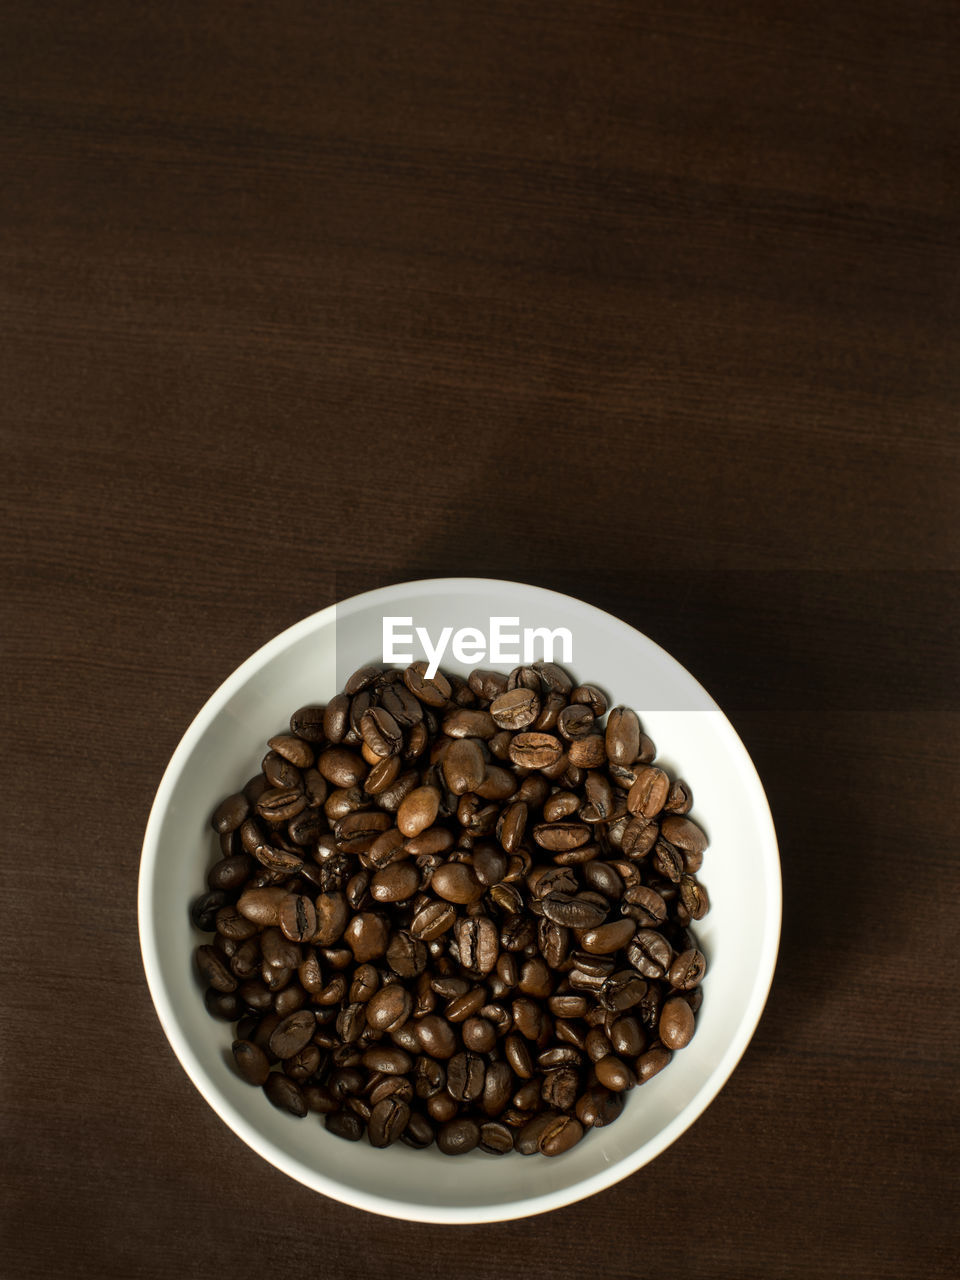 food and drink, food, indoors, roasted coffee bean, still life, coffee - drink, brown, directly above, freshness, coffee, table, large group of objects, no people, coffee bean, studio shot, abundance, close-up, wood - material, raw food, bowl, caffeine, crockery, breakfast